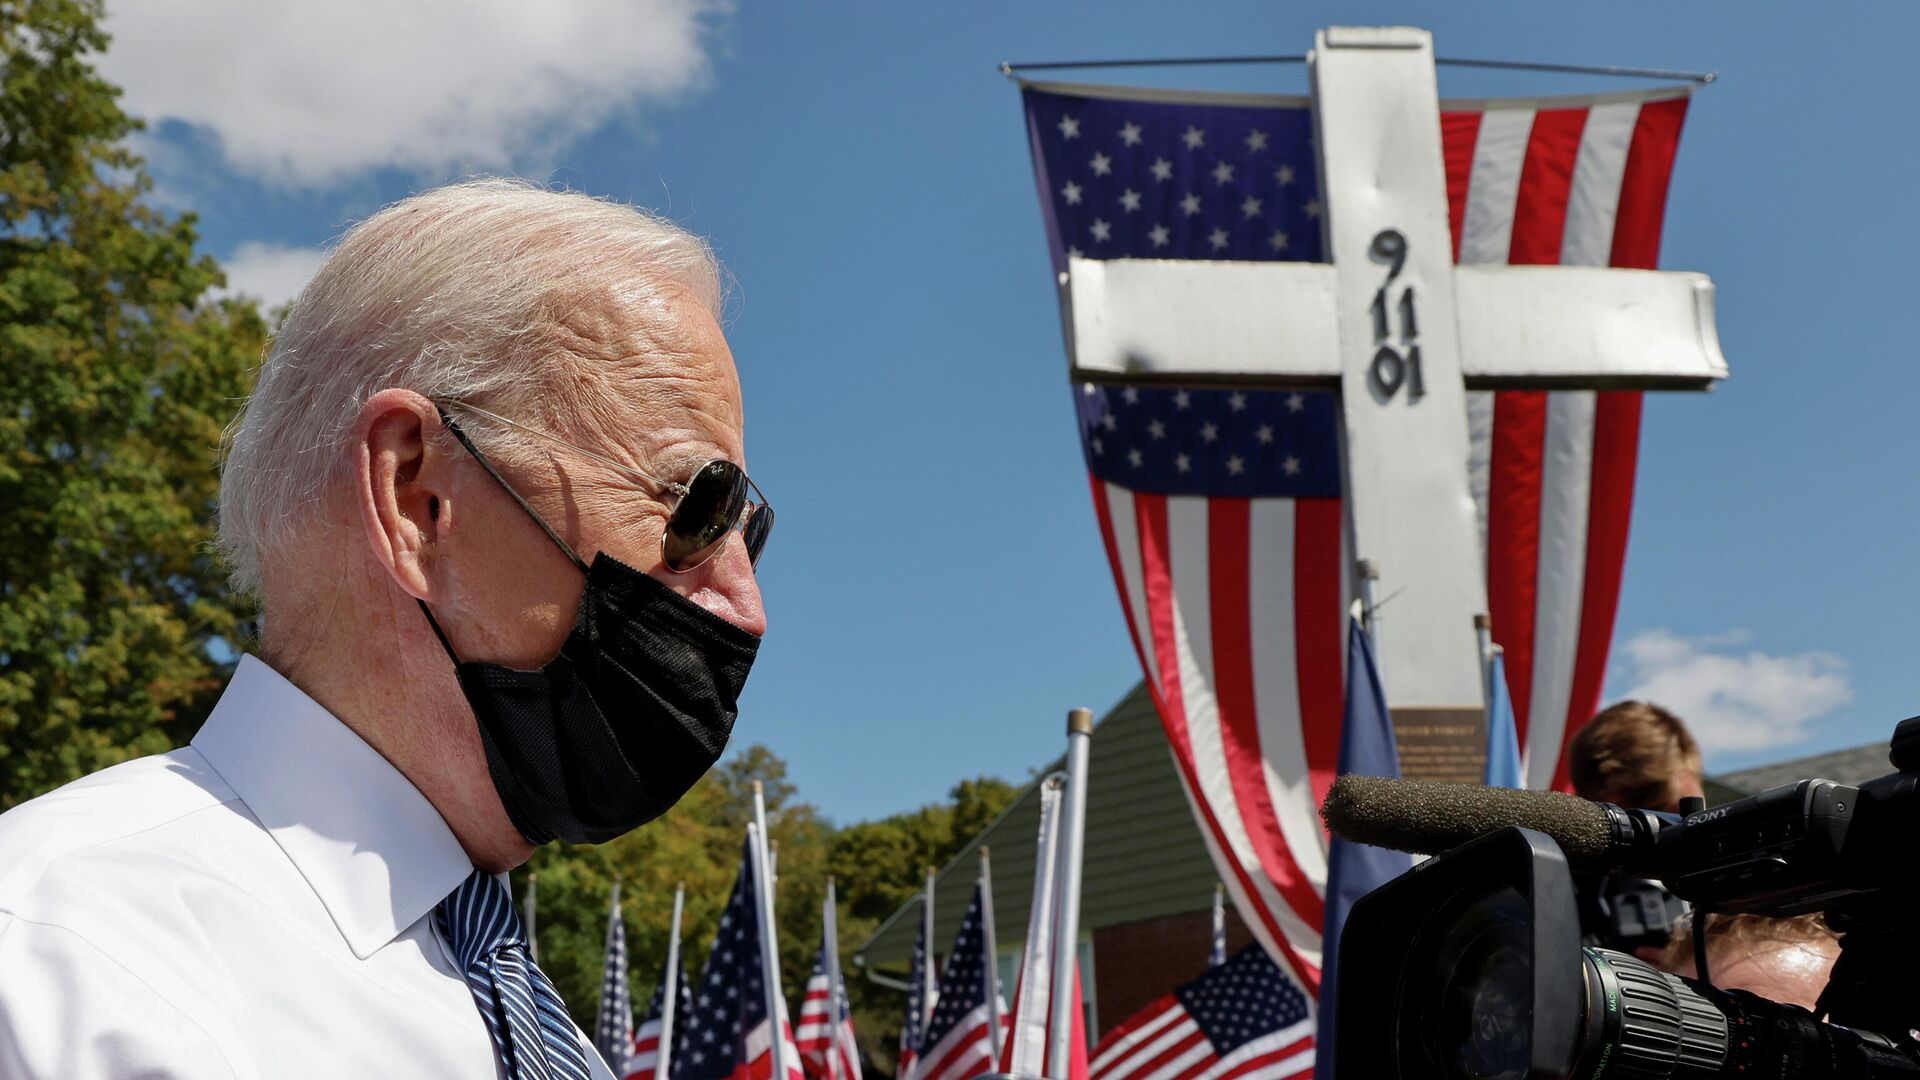 U.S. President Joe Biden speaks to reporters before paying his respects at a 9/11 memorial outside the Shanksville volunteer fire station, as he and first lady Jill Biden stopped at the fire hall after visiting the nearby site where the hijacked United Airlines Flight 93 plane crashed, on the 20th anniversary of the September 11, 2001 attacks, in Shanksville, Pennsylvania, U.S., September 11, 2021. Biden has repeatedly visited the firehouse over the years since 2001. - Sputnik International, 1920, 14.09.2021